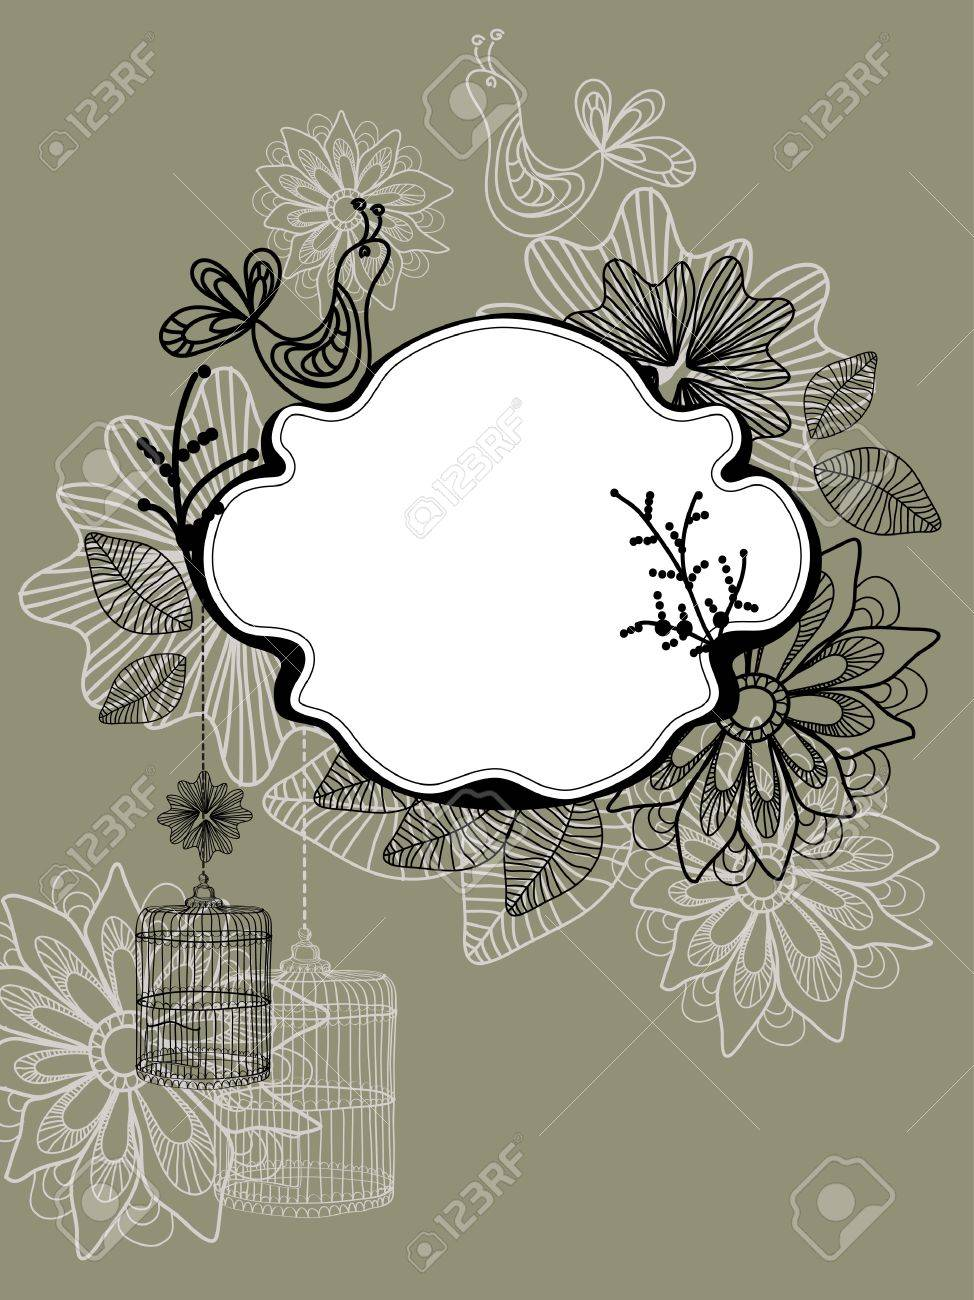 Beautiful background with cage and flowers, illustration Stock Vector - 12024220